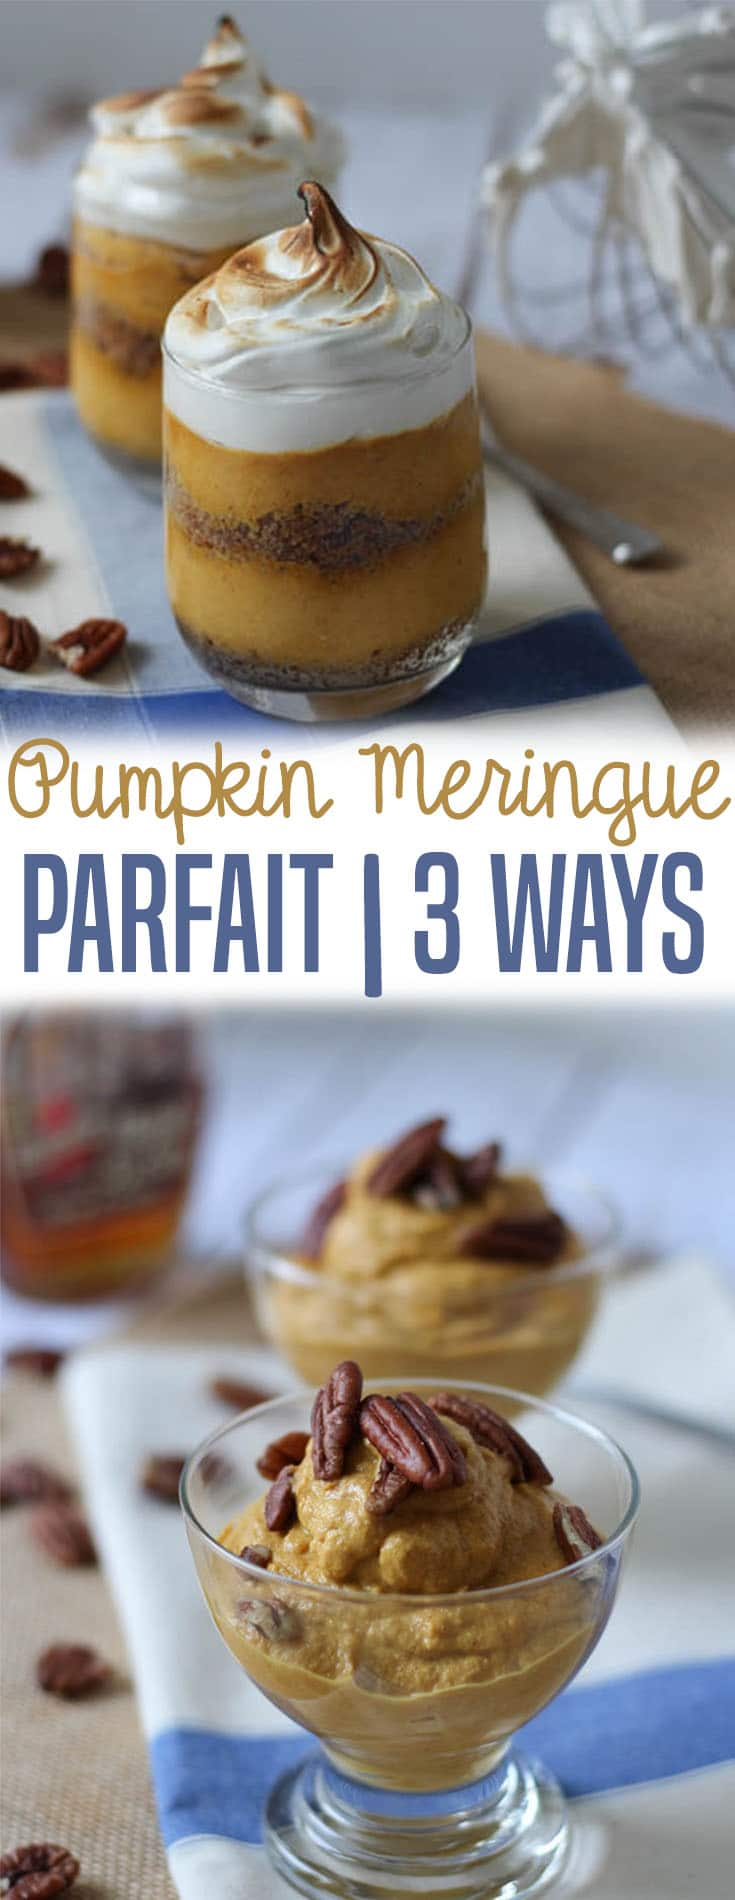 This pumpkin meringue parfait is a delicious dairy free alternative to pumpkin pie that can be made gluten free and vegan for holiday guests!